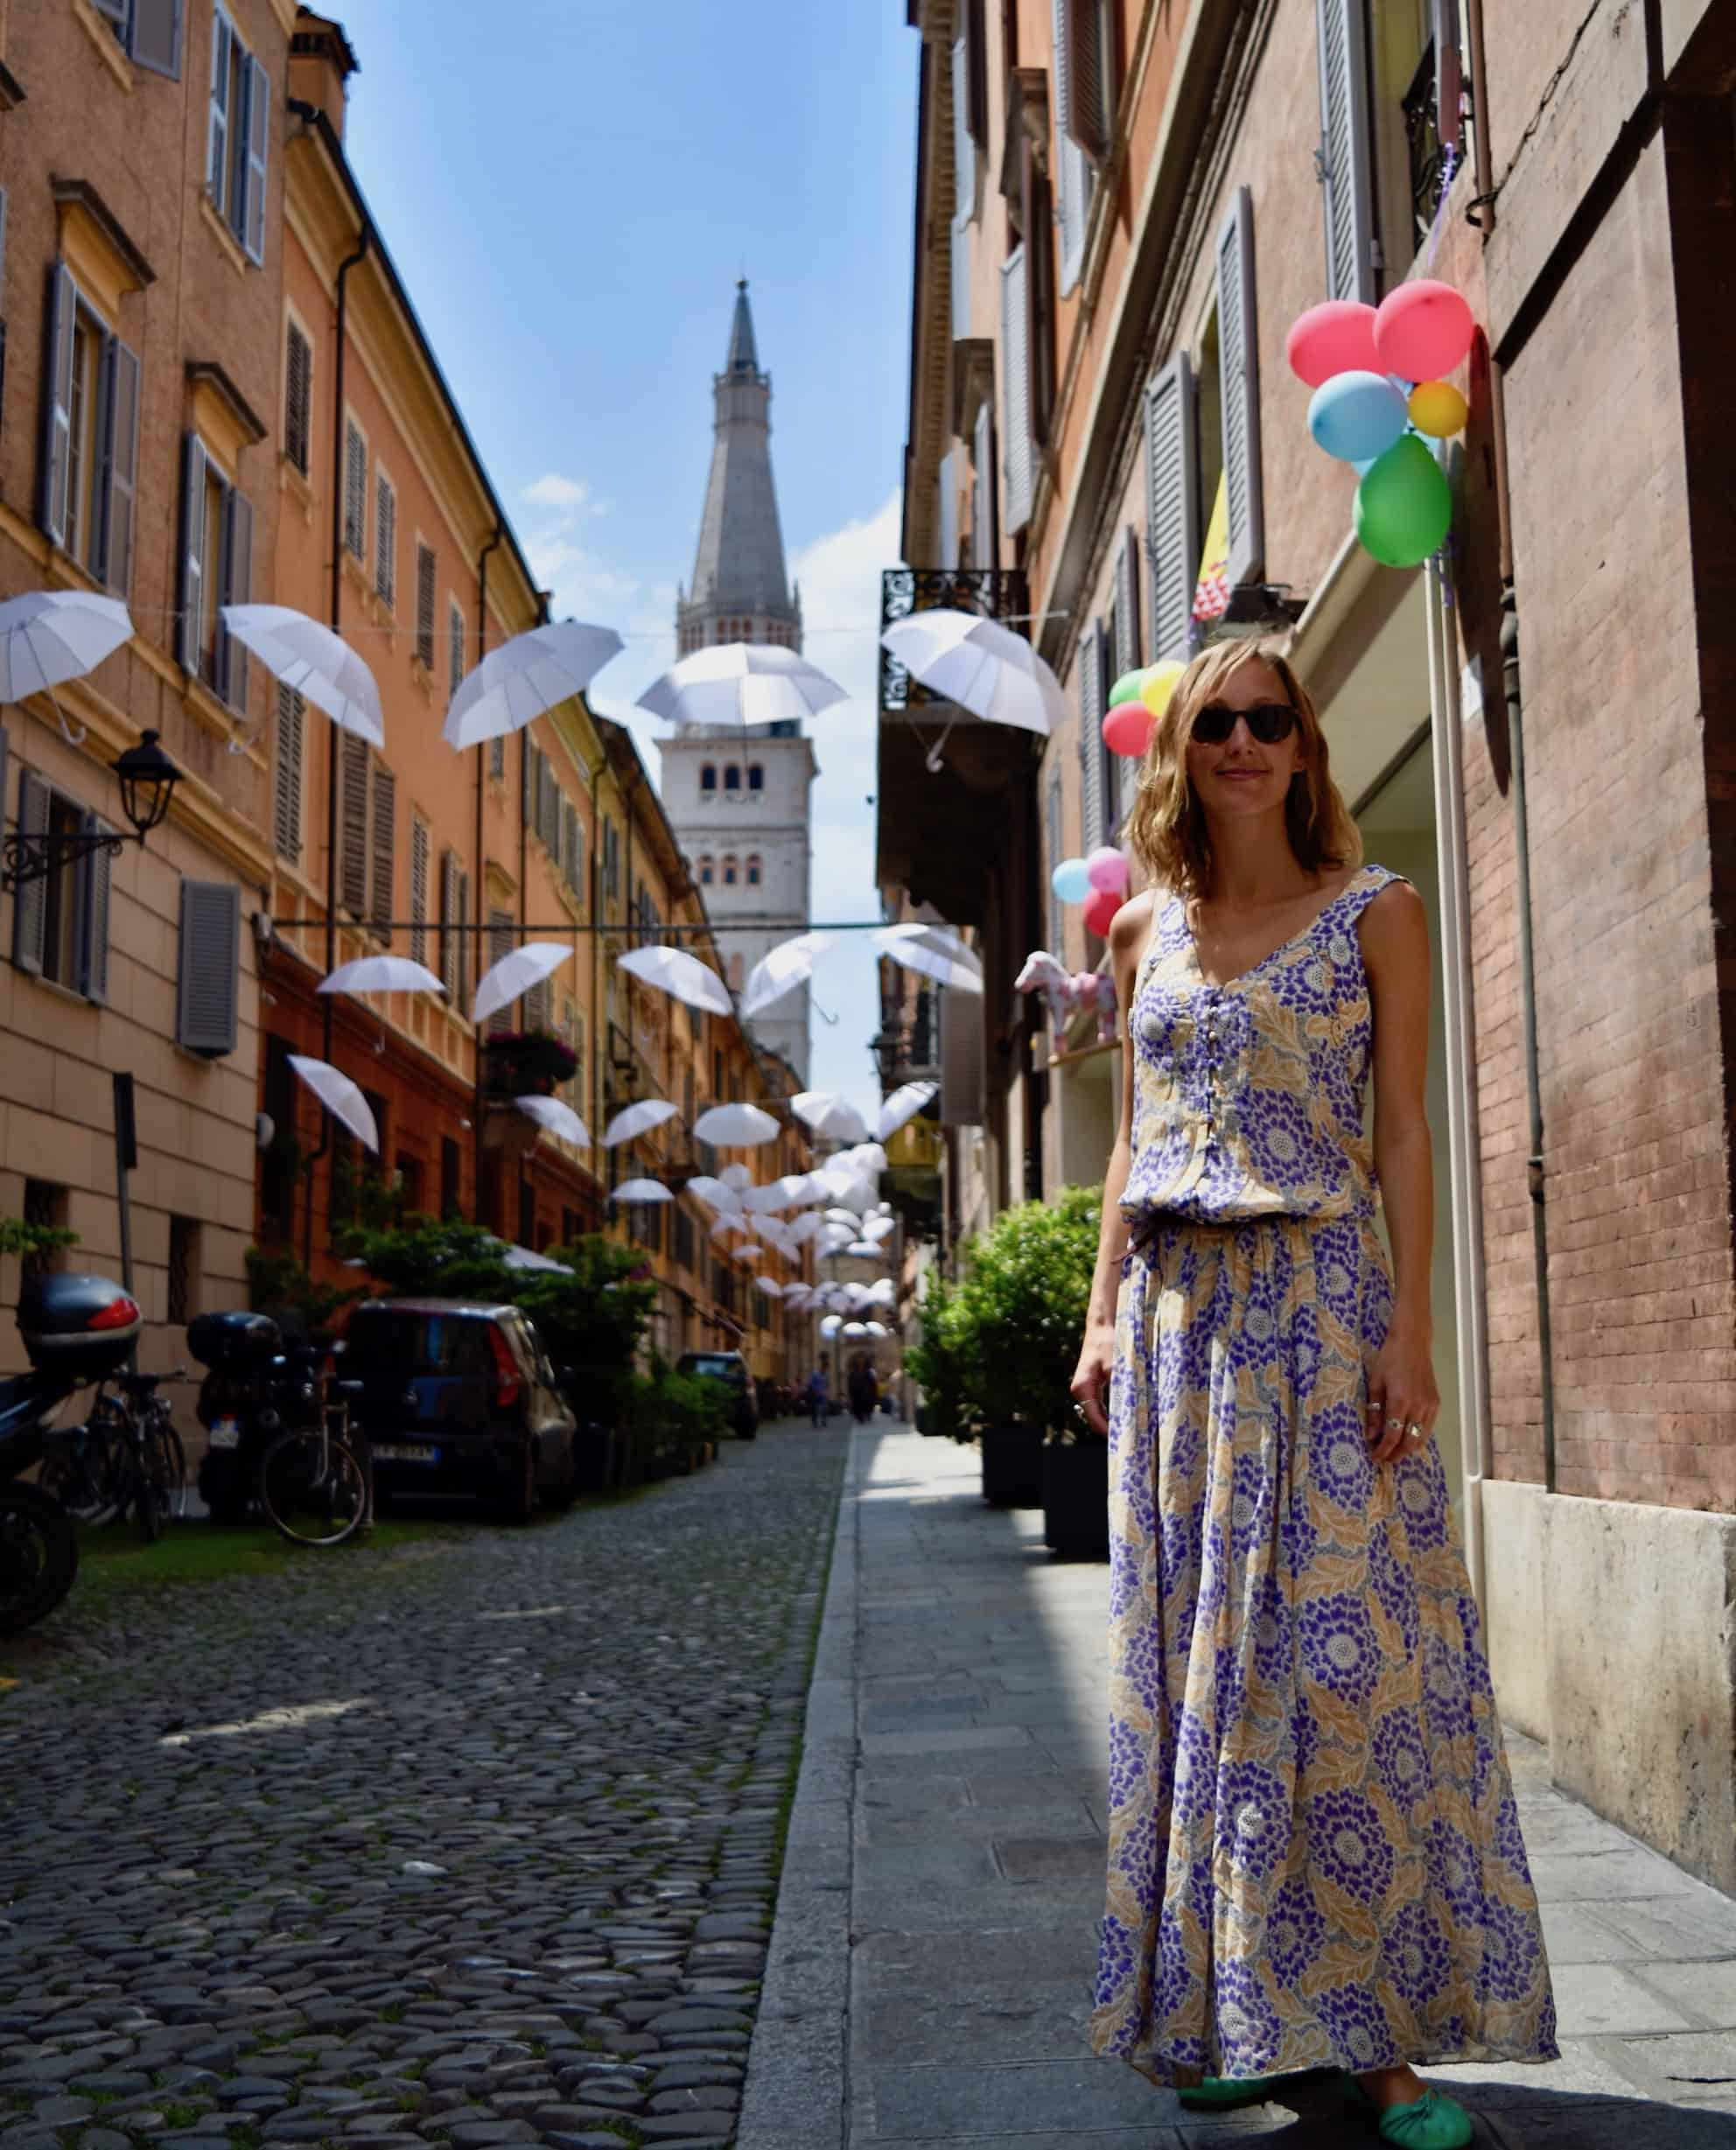 Hayley Lewis standing on a cobbled street in Modena, Emilia Romagna